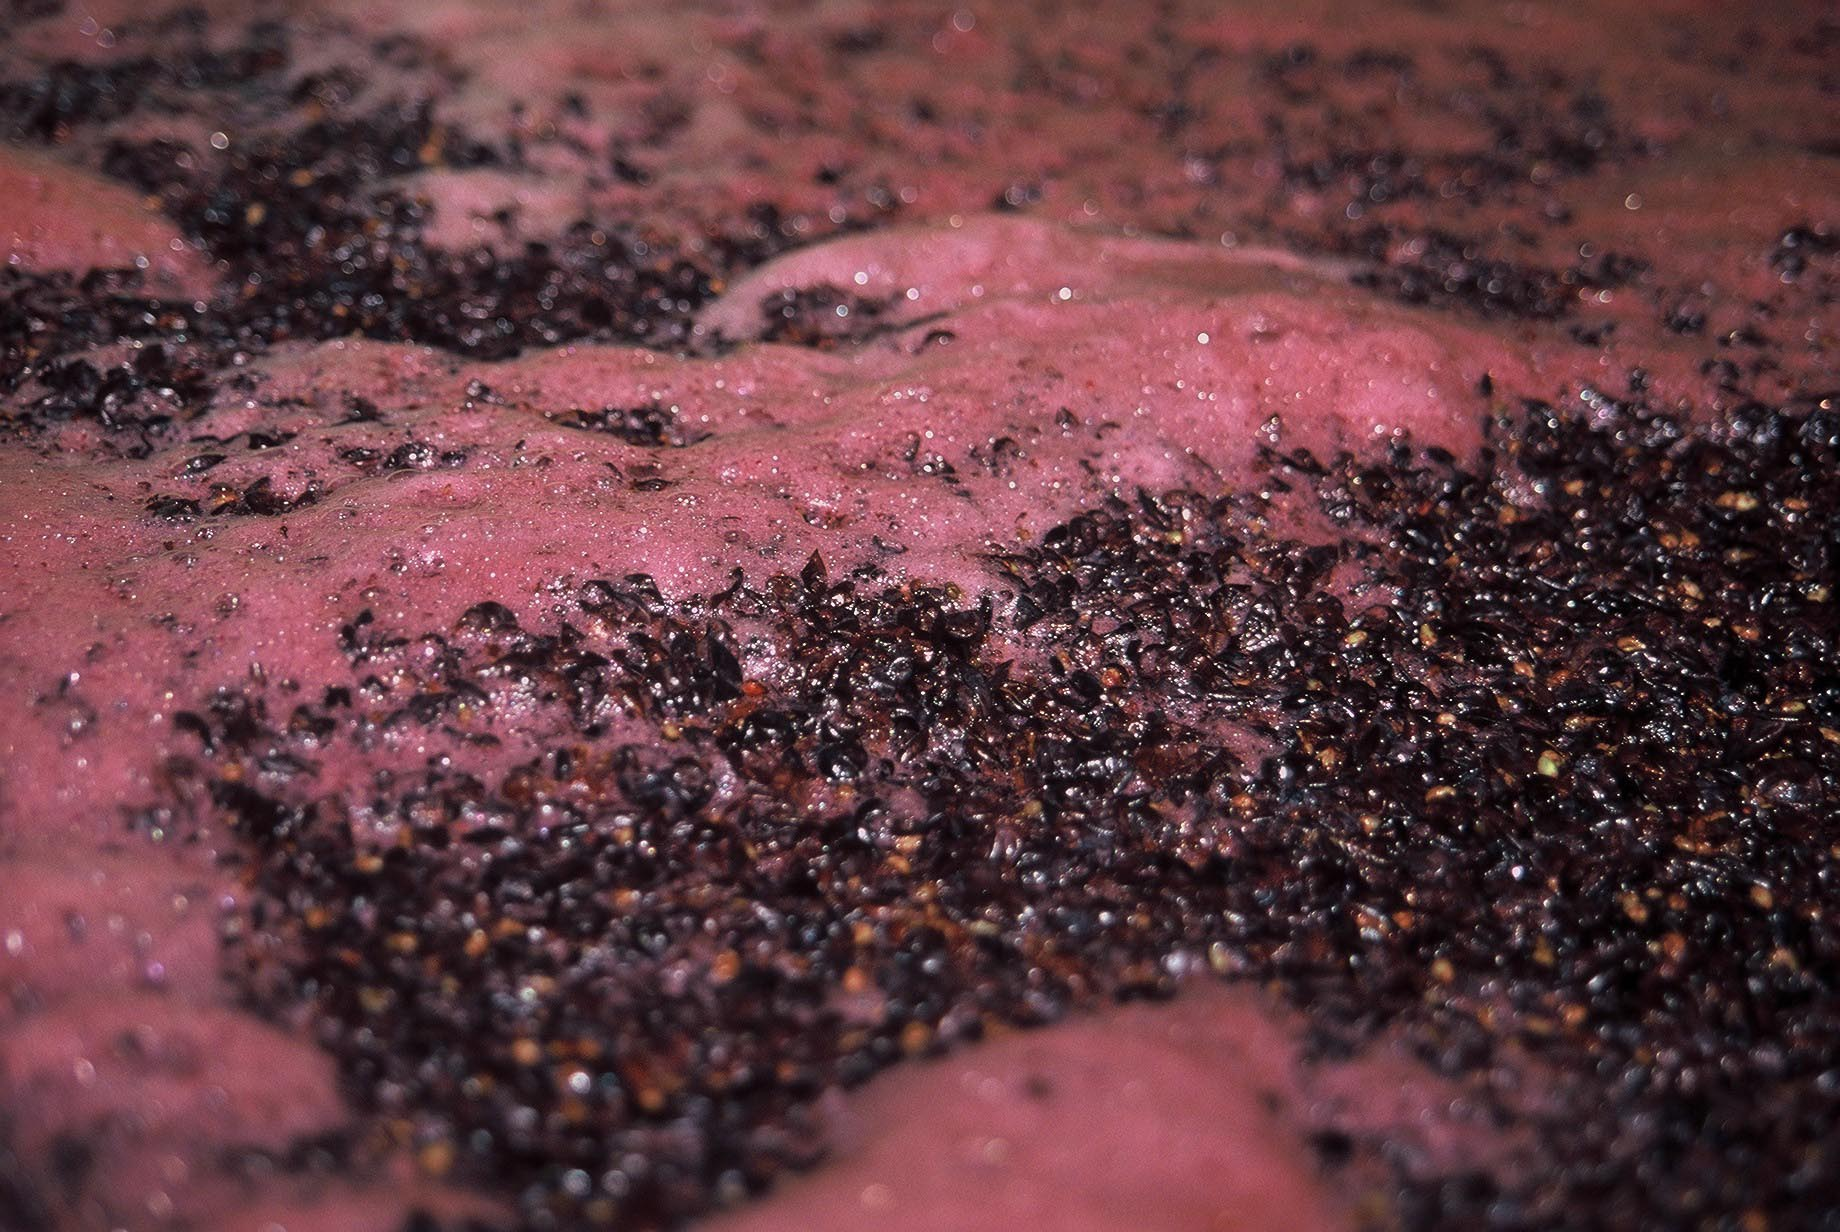 Macerate your grapes; homemade wine